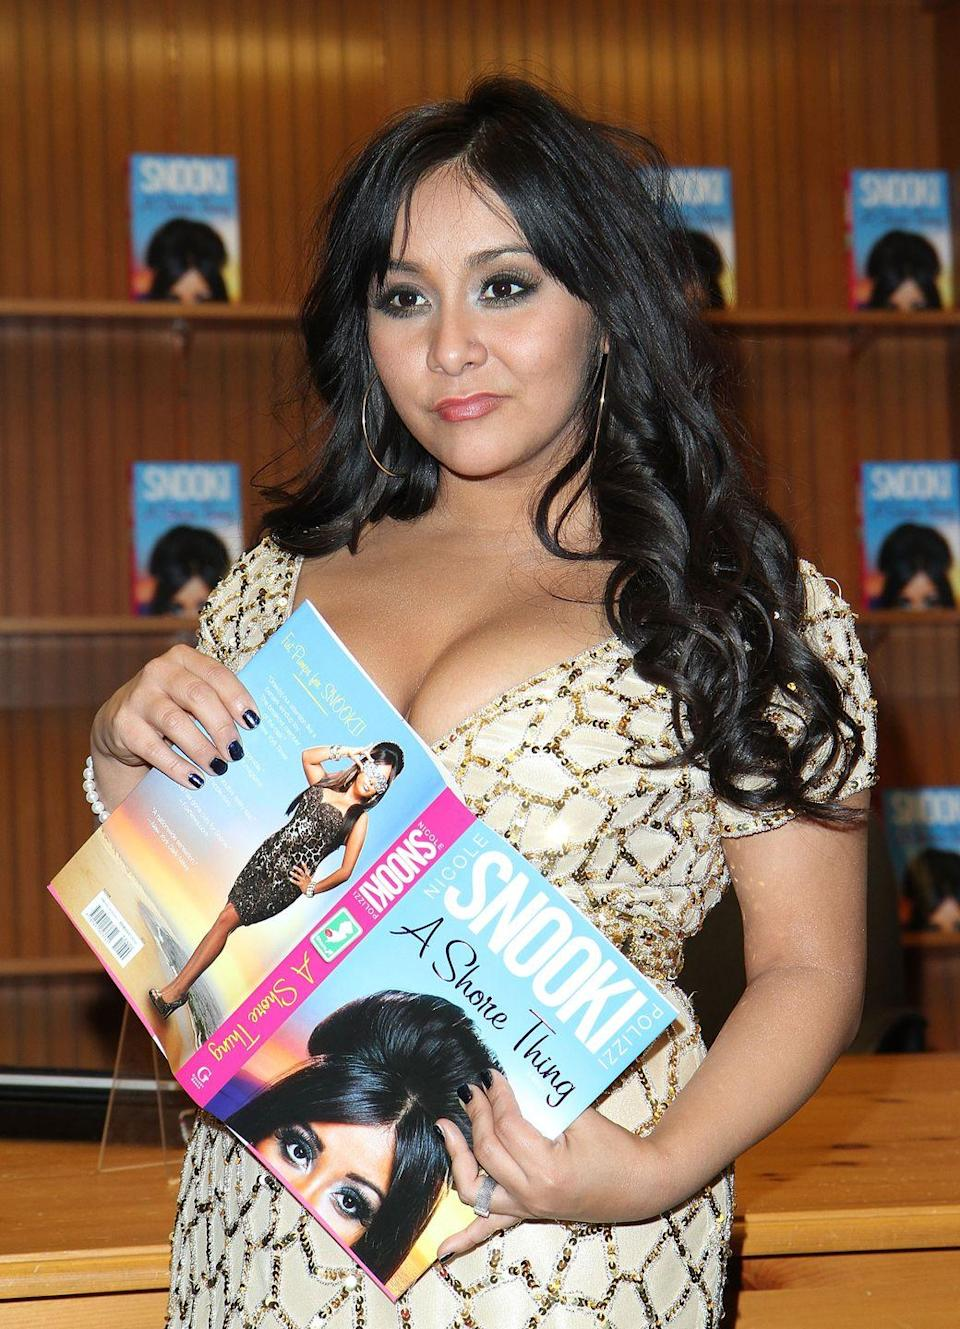 """<p>The life of Nicole """"Snooki"""" Polizzi may have seen like it was stranger than fiction at times, but the Jersey Shore star published her novel in 2011. Set in a place that Snooki is more than a little familiar with, Seaside Heights, N.J., <em>A Shore Thing</em> tells the story of Gia Spumanti, a party girl who is focused on having a sexy summer. </p><p>But despite the seemingly familiar plot, Snooki told <a href=""""https://www.reuters.com/article/us-books-snooki/jersey-shore-star-snooki-turns-novelist-idUSTRE70A61520110111"""" rel=""""nofollow noopener"""" target=""""_blank"""" data-ylk=""""slk:Reuters"""" class=""""link rapid-noclick-resp"""">Reuters</a> she felt like she kept people on their toes in other ways. """"I didn't want to do what everybody expected me to do, like an autobiography, or how to be a guidette,"""" she said. """"I wanted to surprise everybody, so I did a novel.""""</p><p>Unfortunately, <a href=""""https://www.hollywoodreporter.com/news/loads-promotion-snookis-book-low-sales-76611"""" rel=""""nofollow noopener"""" target=""""_blank"""" data-ylk=""""slk:low book sales"""" class=""""link rapid-noclick-resp"""">low book sales</a> didn't end up turning G-T-L (Gym, Tan, Laundry) into G-T-R (Gym, Tan, Read A Book). </p><p><a class=""""link rapid-noclick-resp"""" href=""""https://www.amazon.com/Shore-Thing-Nicole-Snooki-Polizzi/dp/1451623747/ref=sr_1_2?dchild=1&keywords=a+shore+thing&qid=1599798574&s=books&sr=1-2&tag=syn-yahoo-20&ascsubtag=%5Bartid%7C2140.g.33987725%5Bsrc%7Cyahoo-us"""" rel=""""nofollow noopener"""" target=""""_blank"""" data-ylk=""""slk:Buy the Book"""">Buy the Book</a></p>"""